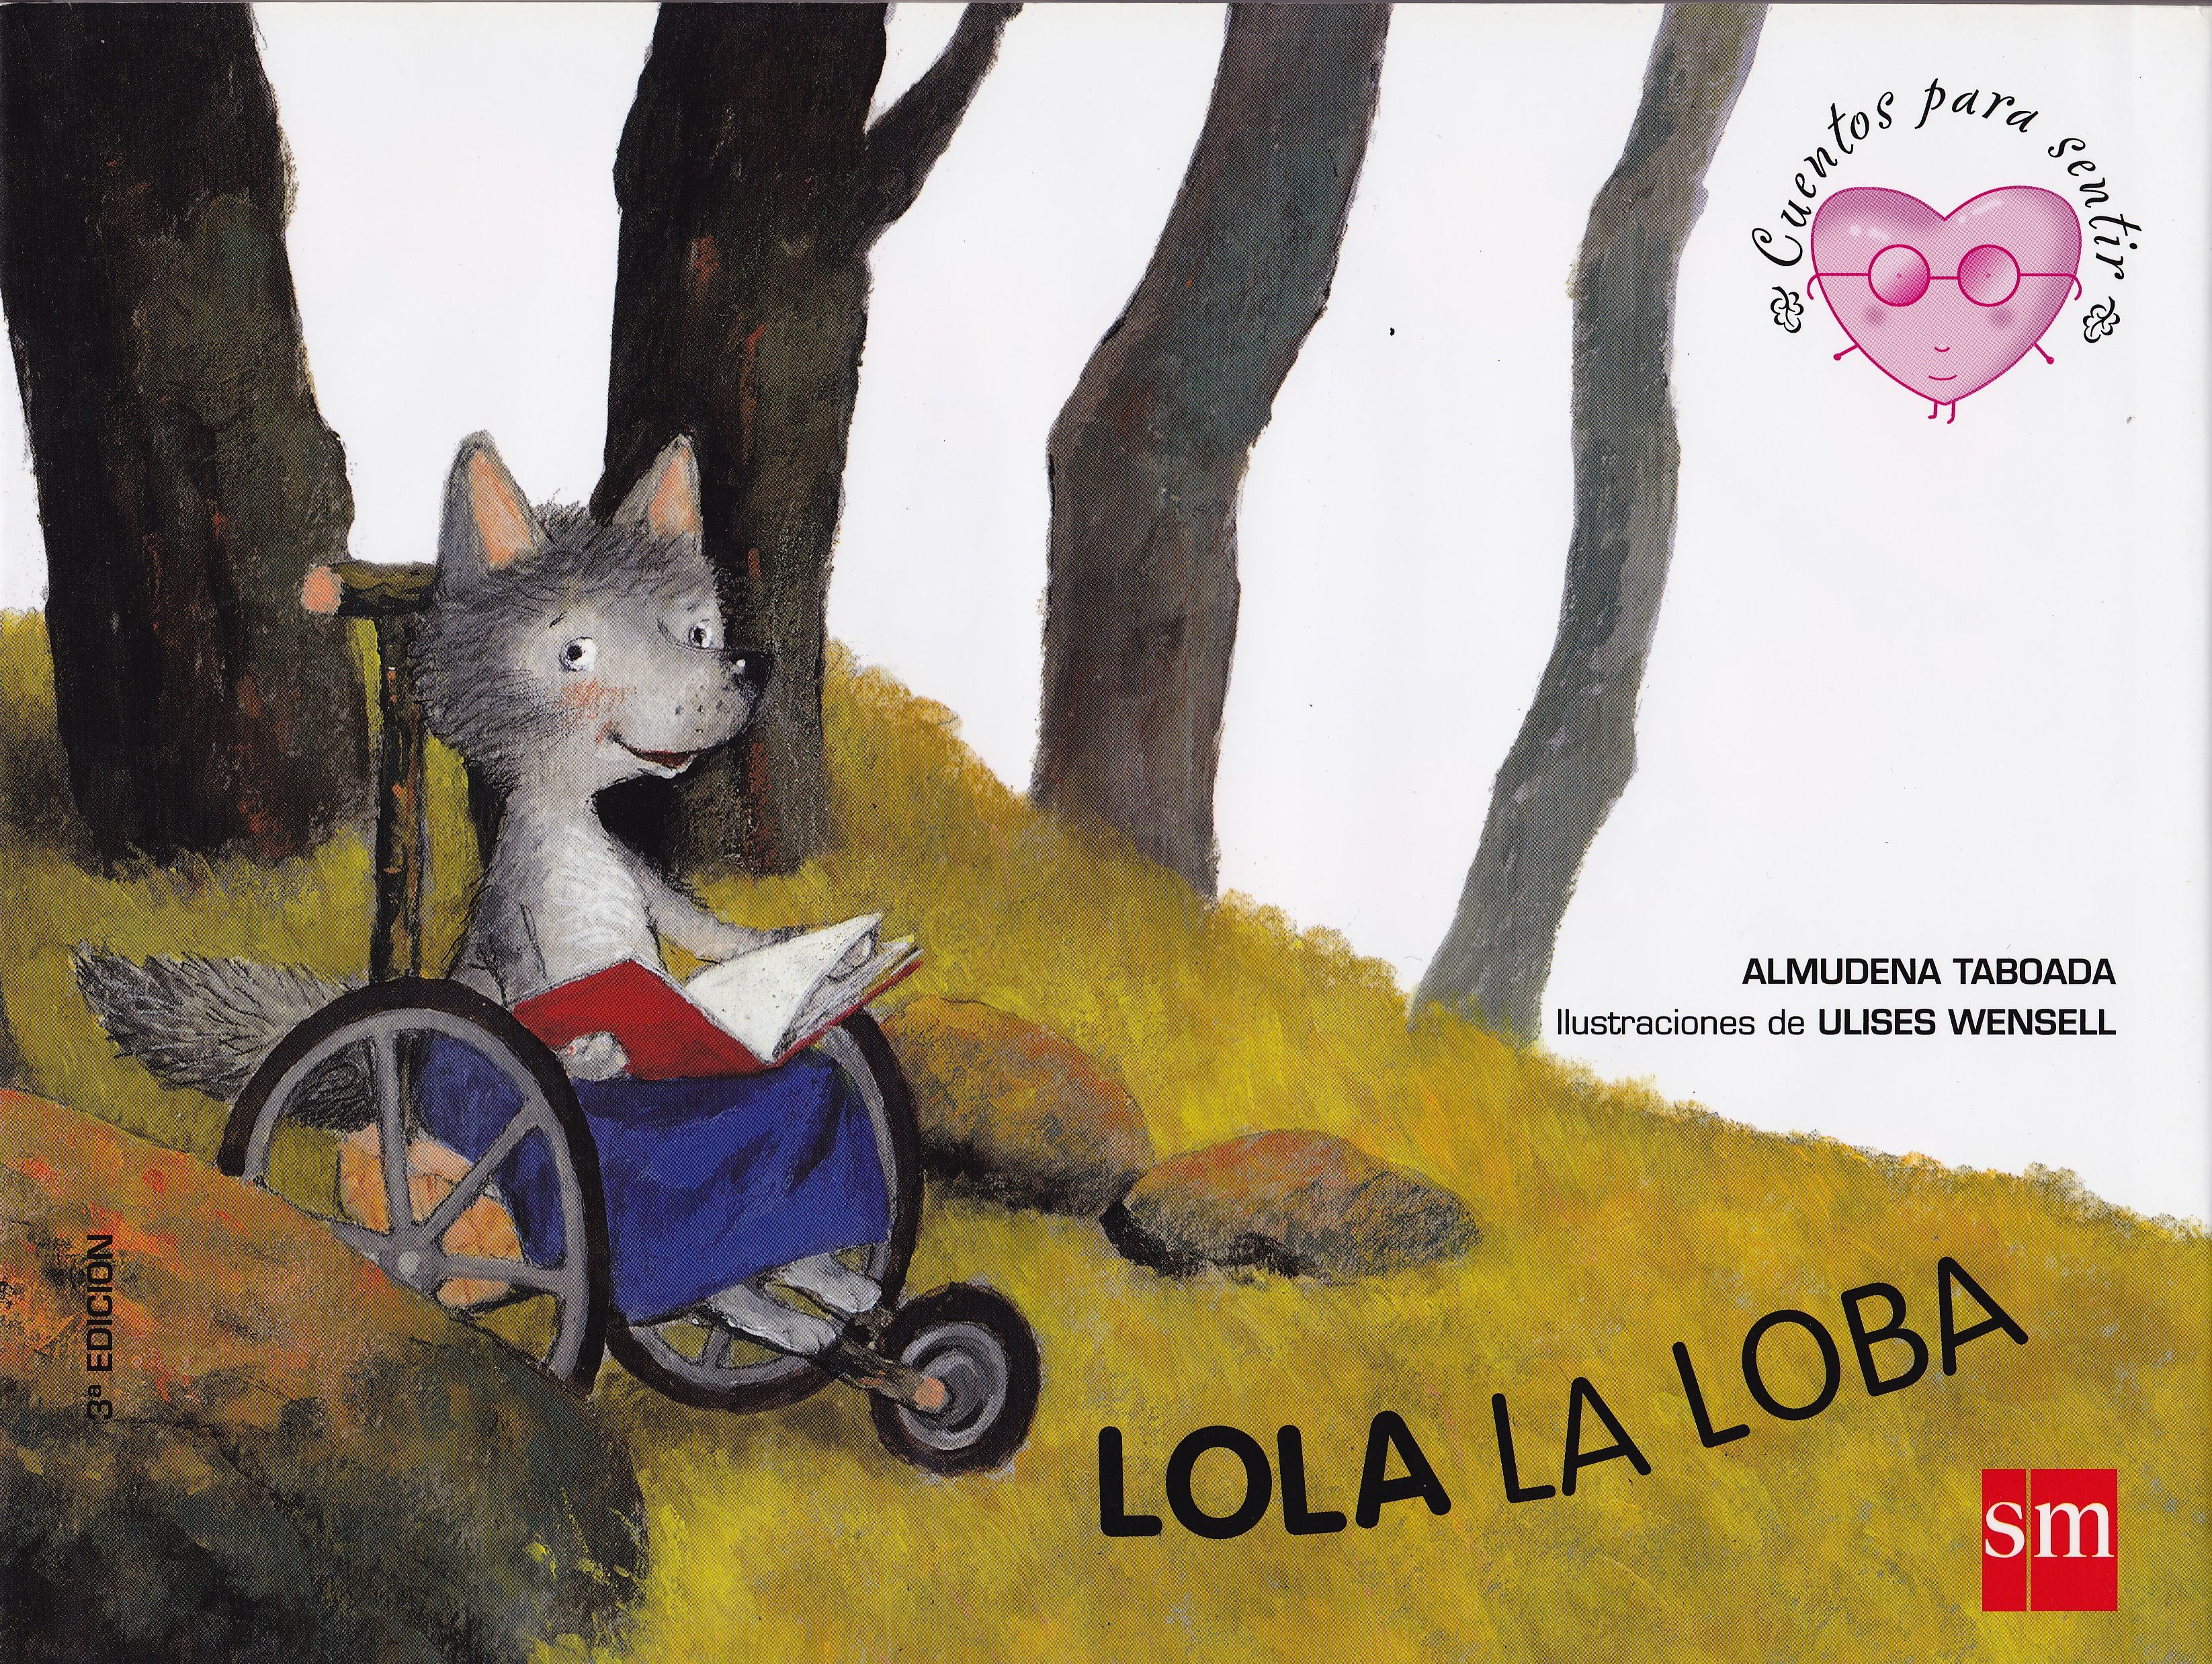 Disability inclusive books that should be available in